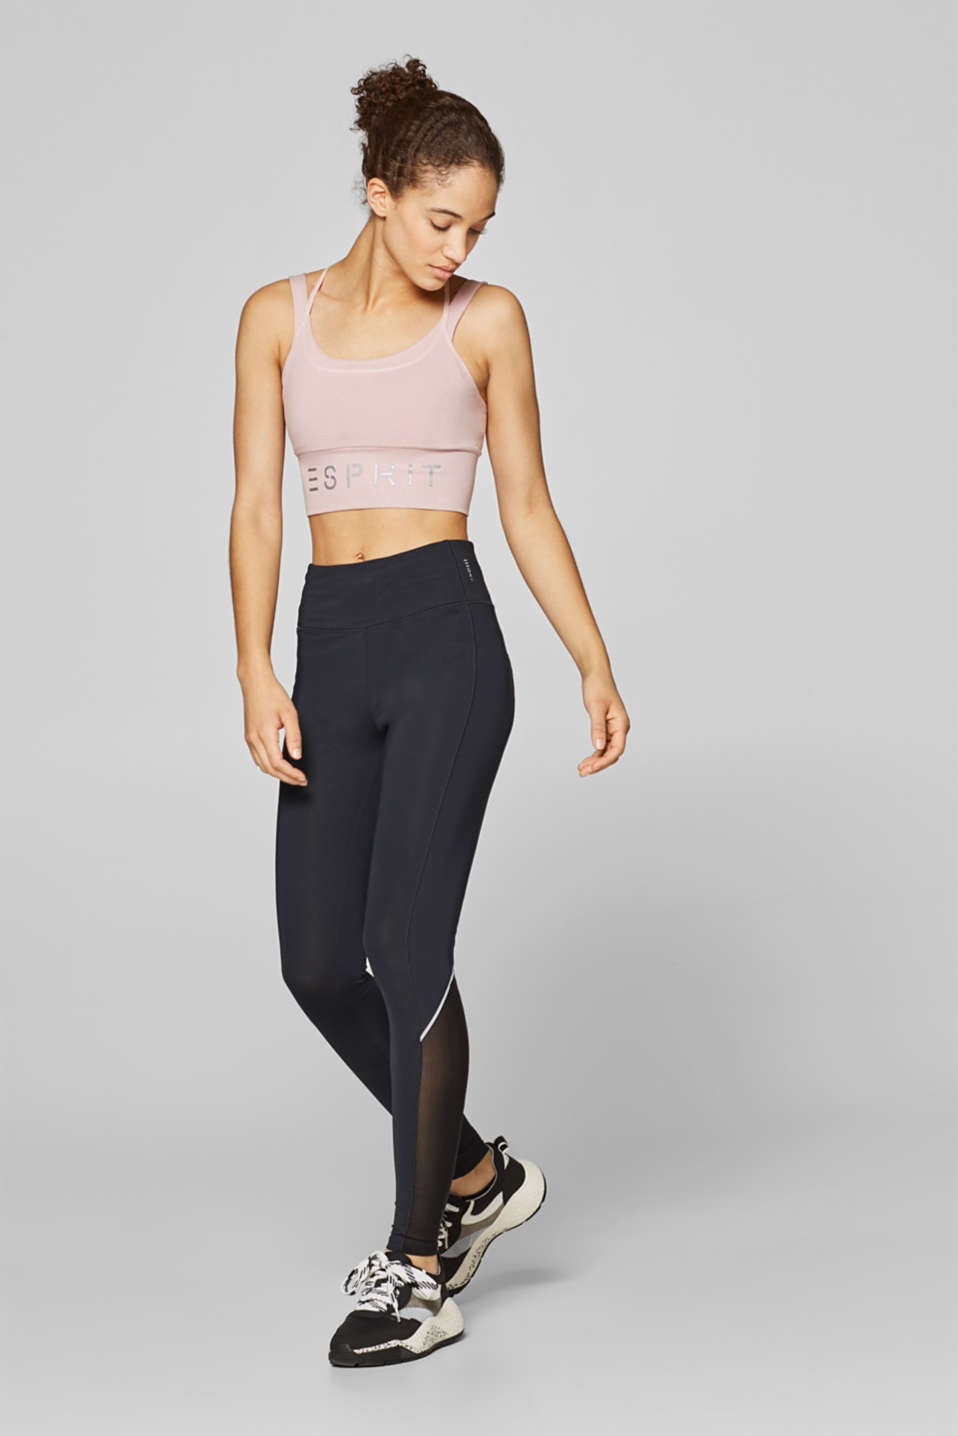 Esprit - Active leggings with mesh inserts, E-DRY